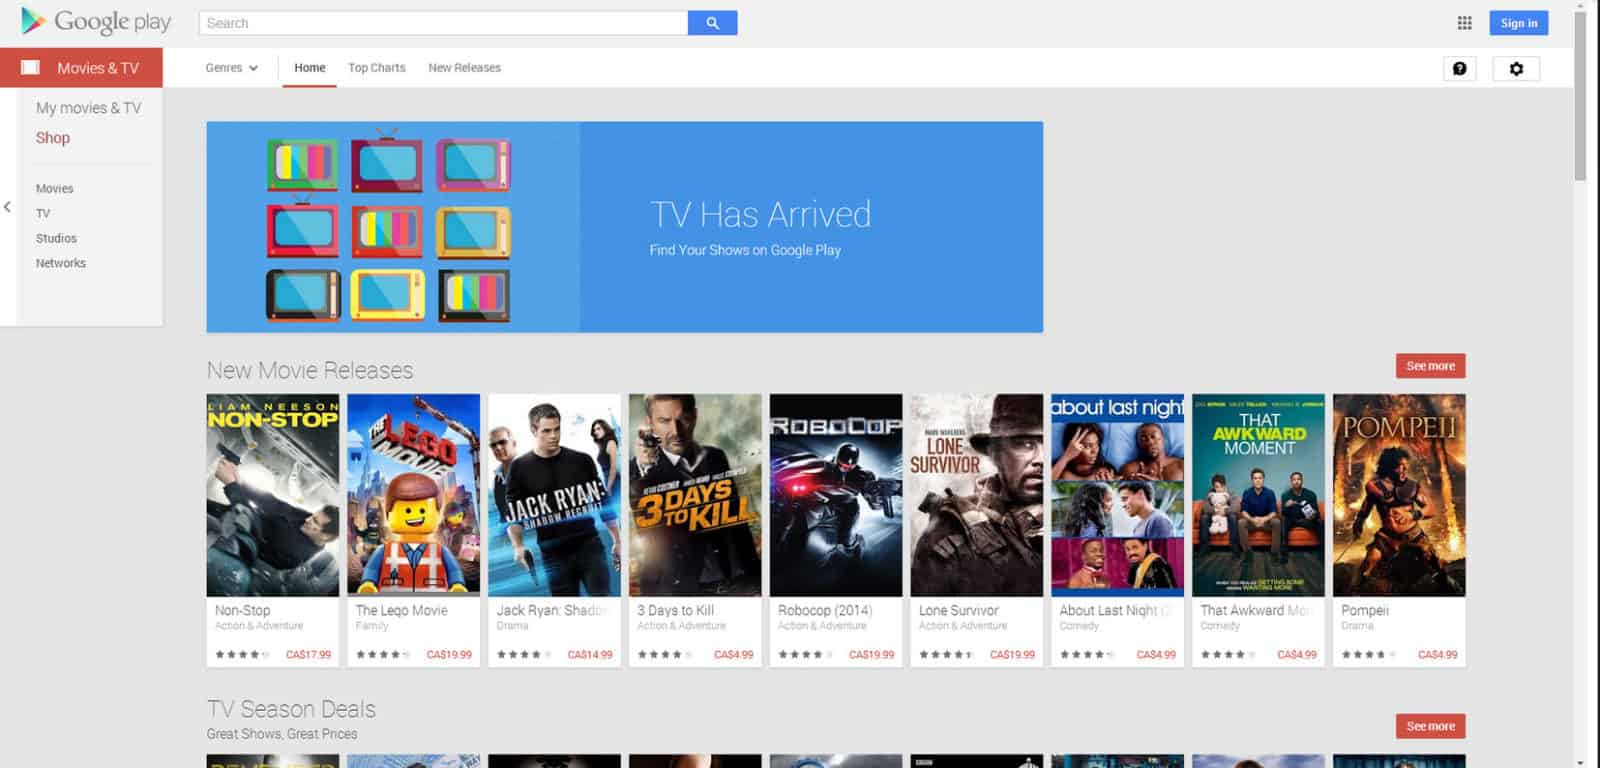 Google Play TV in Canada